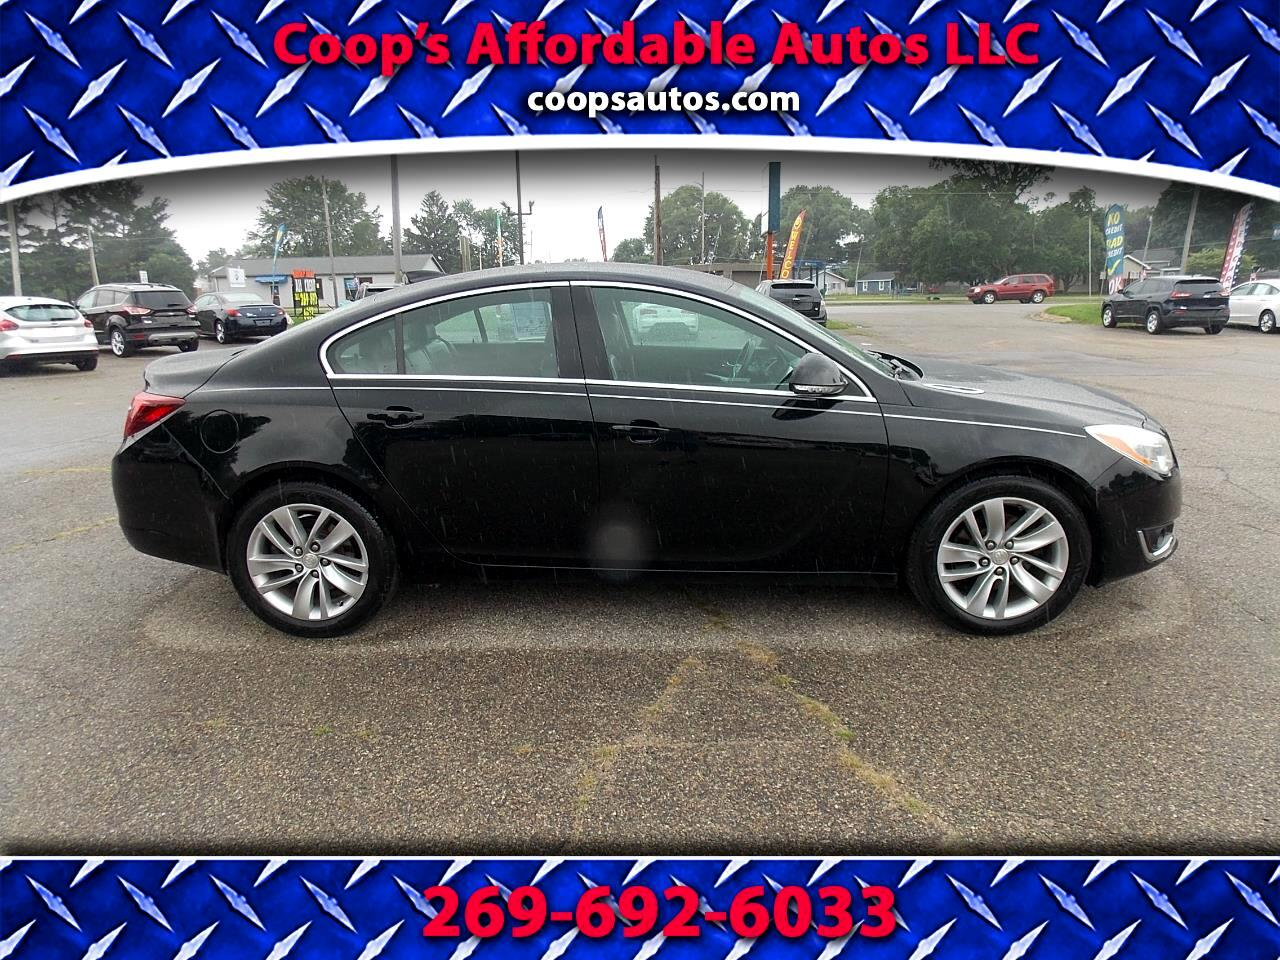 Buick Regal 4dr Sdn Turbo FWD 2015